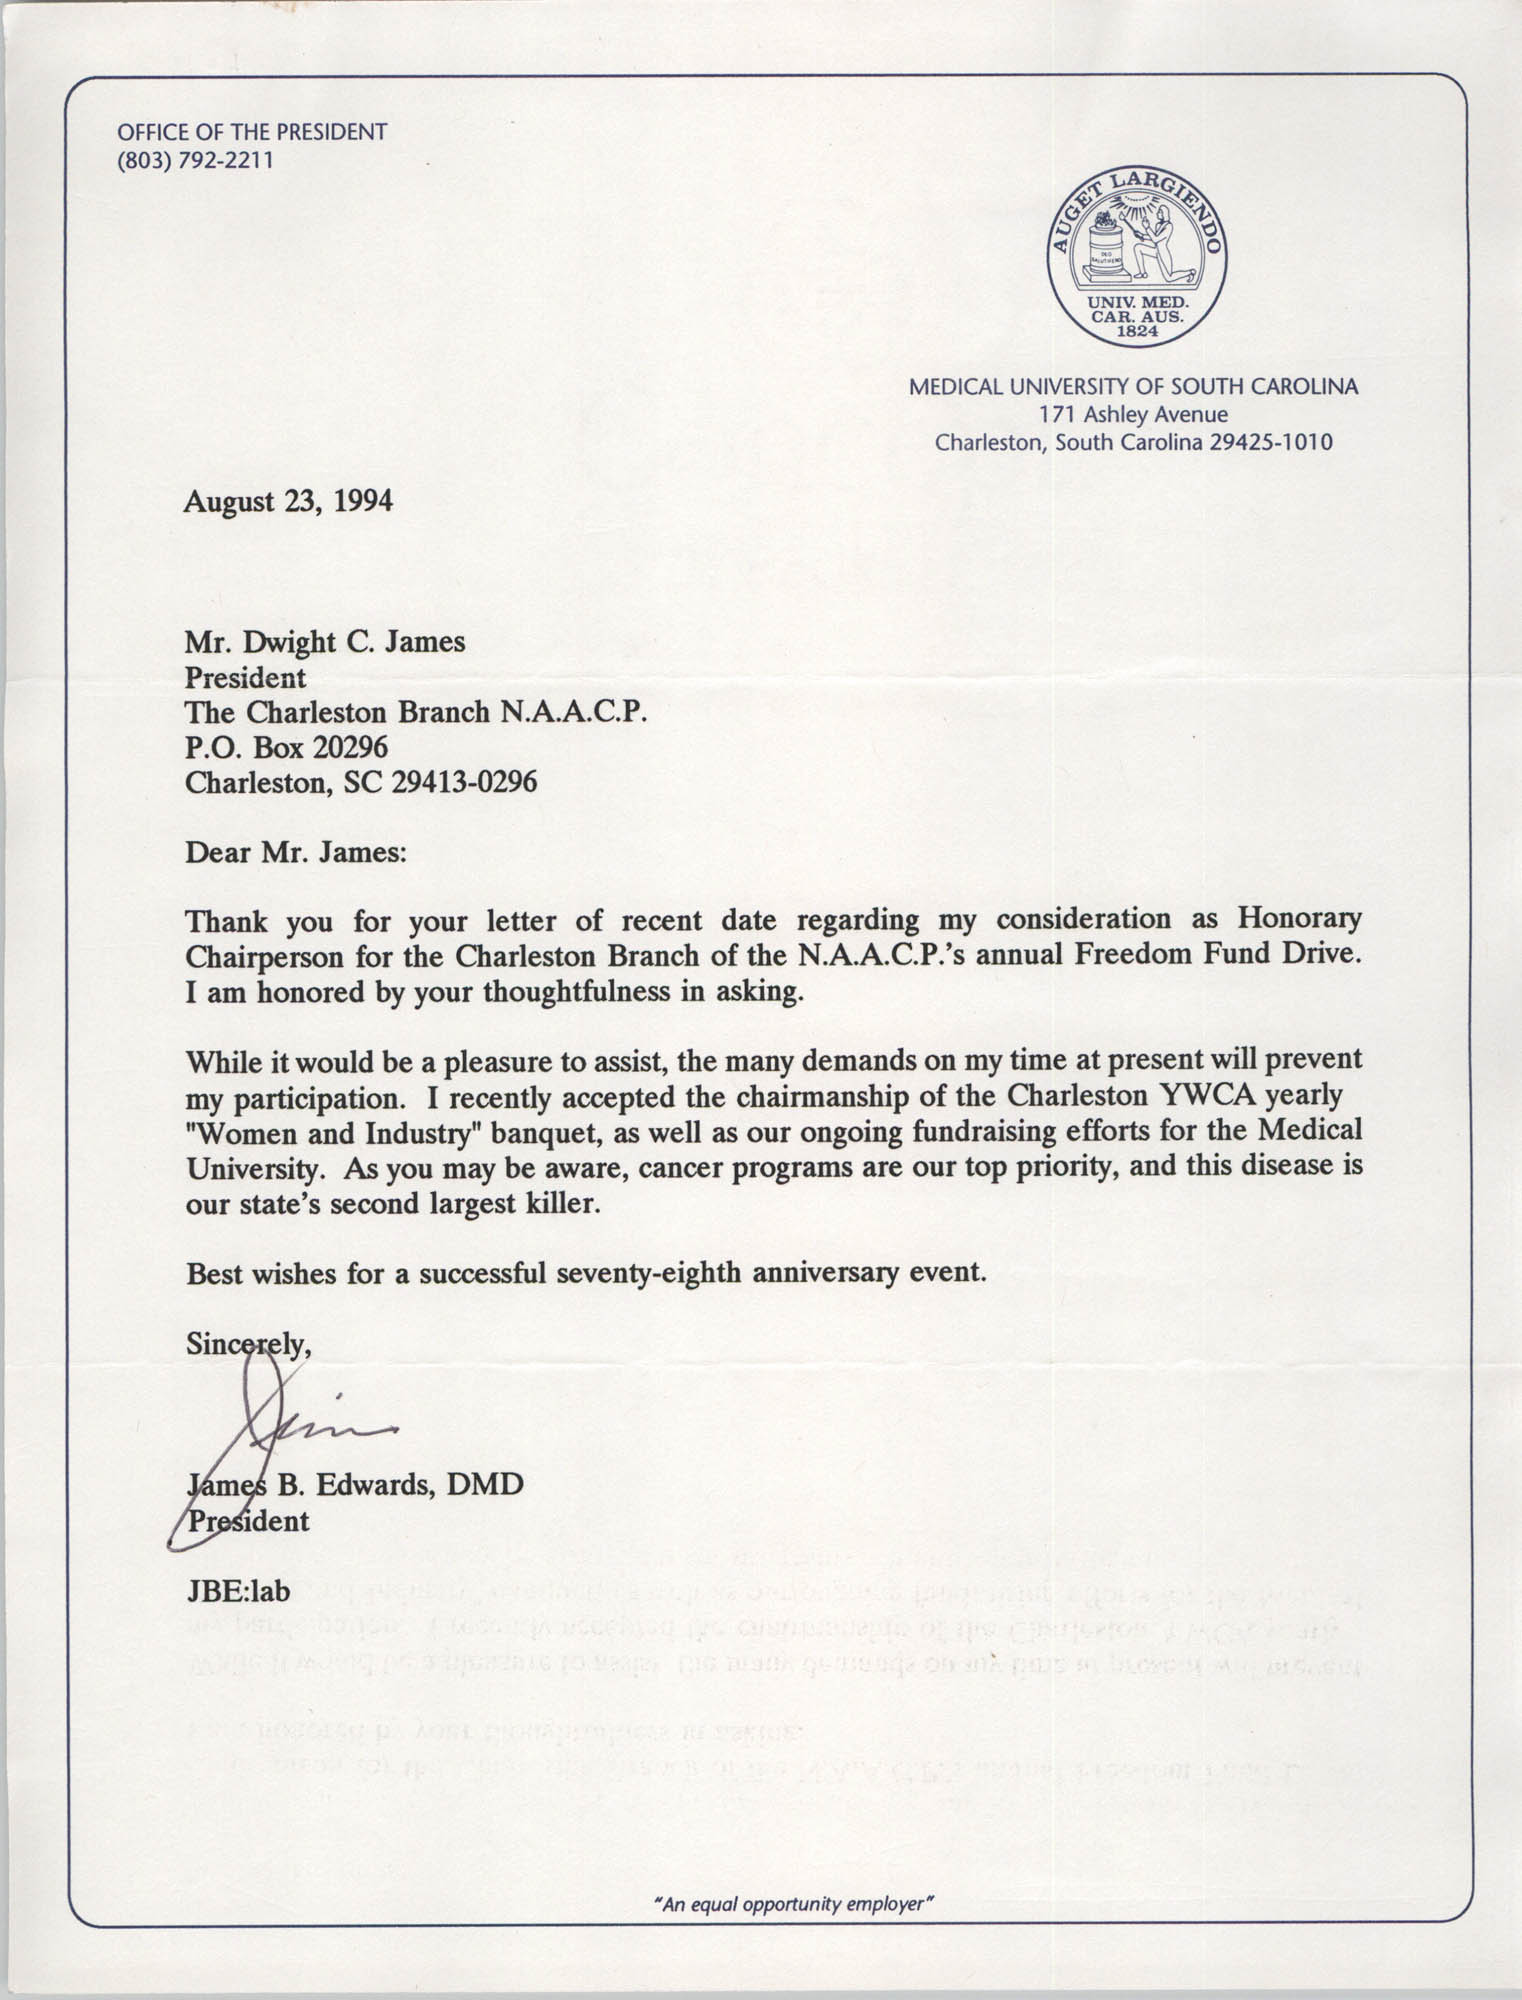 Letter from James B. Edwards to Dwight C. James, August 23, 1994